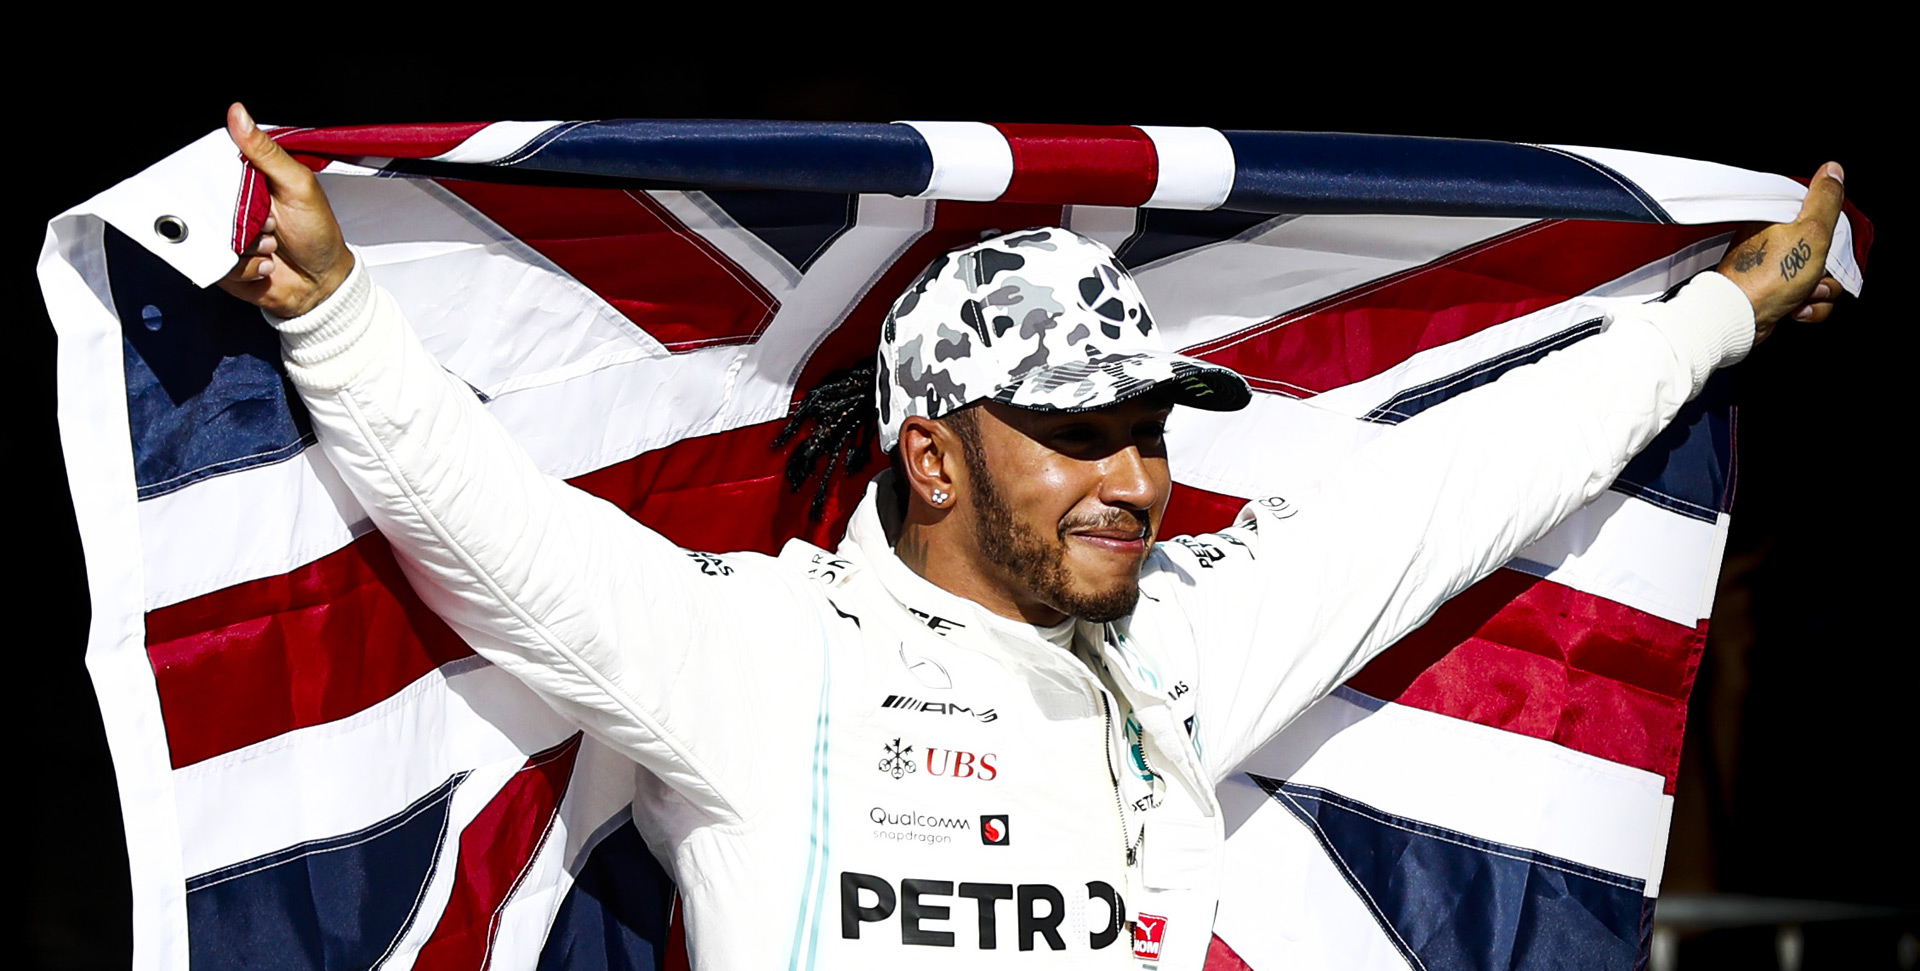 Lewis Hamilton no longer drives supercar collection because it hurts the planet